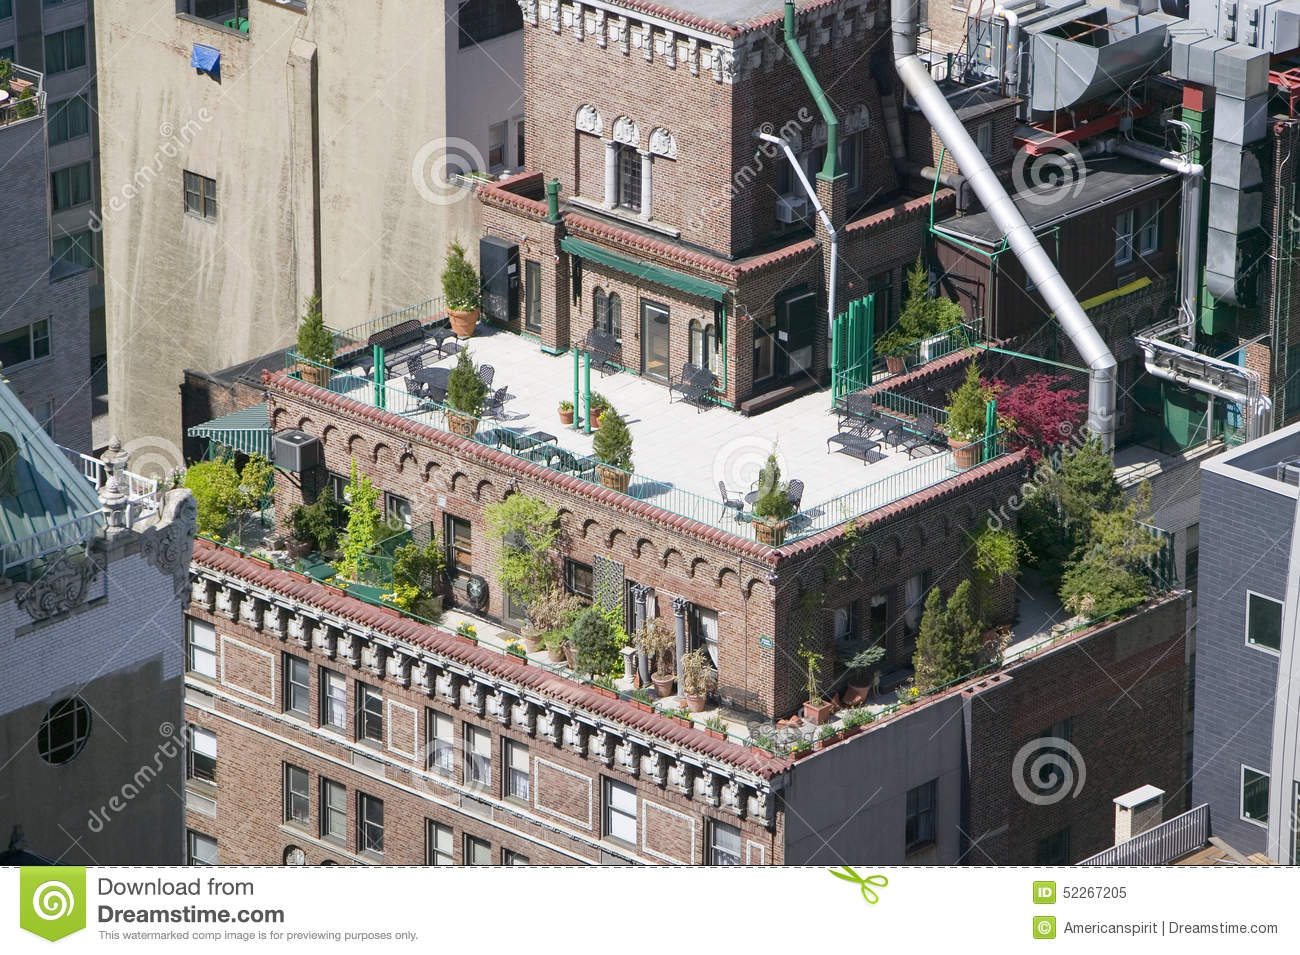 Trees And Plants Grow On Outdoor Deck Of New York City Apartment Building In Manhattan New York